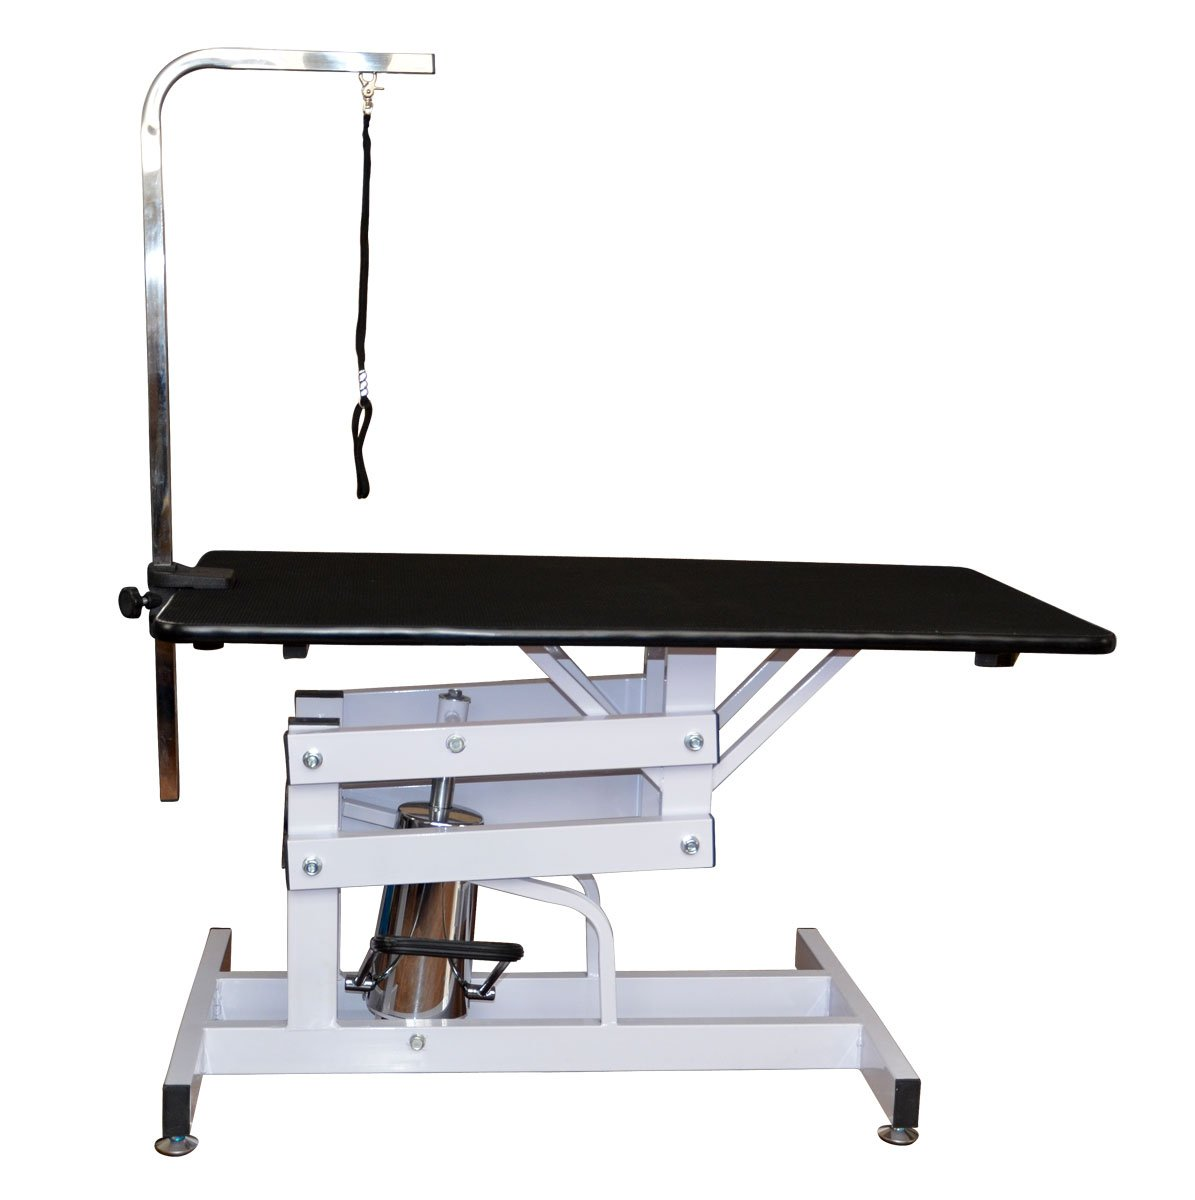 PawHut 140108-001 Deluxe Professional Z-Lift Hydraulic Pet Dog Grooming Table with Arm Noose